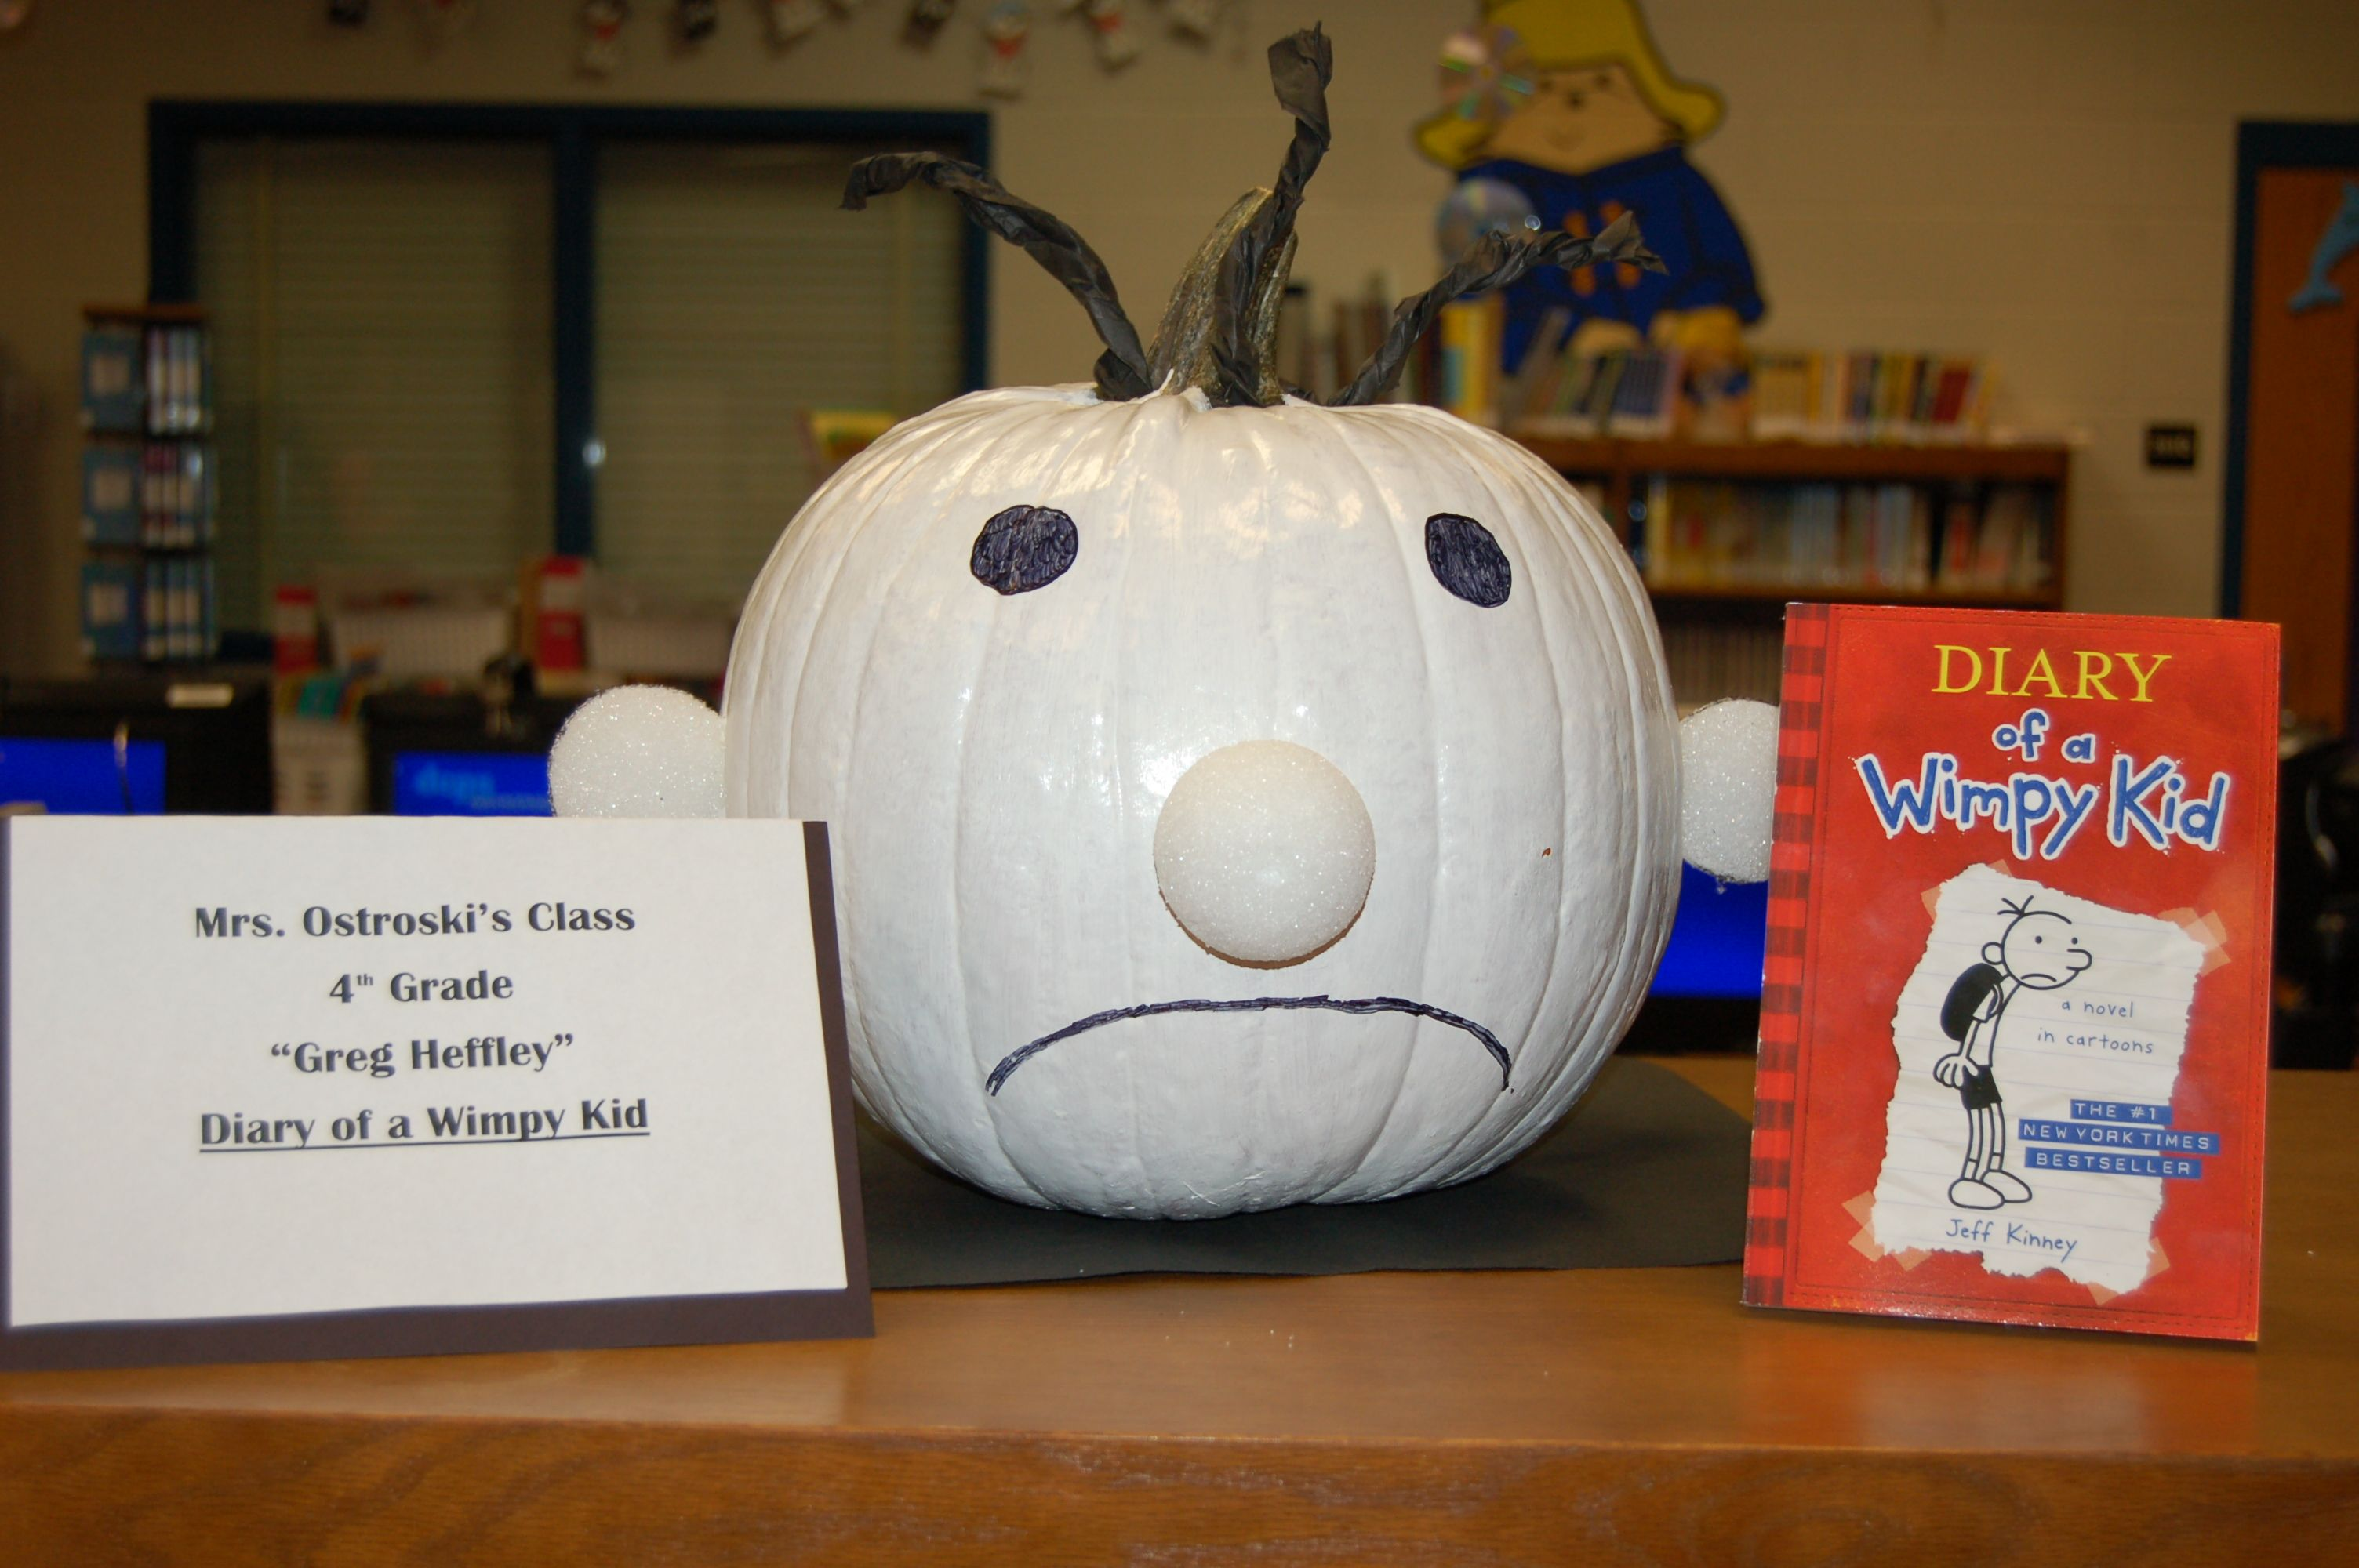 pumpkin character book report Pick a favorite book character decorate a pumpkin to look like that character take a picture of it write a short paragraph telling about the character and book.